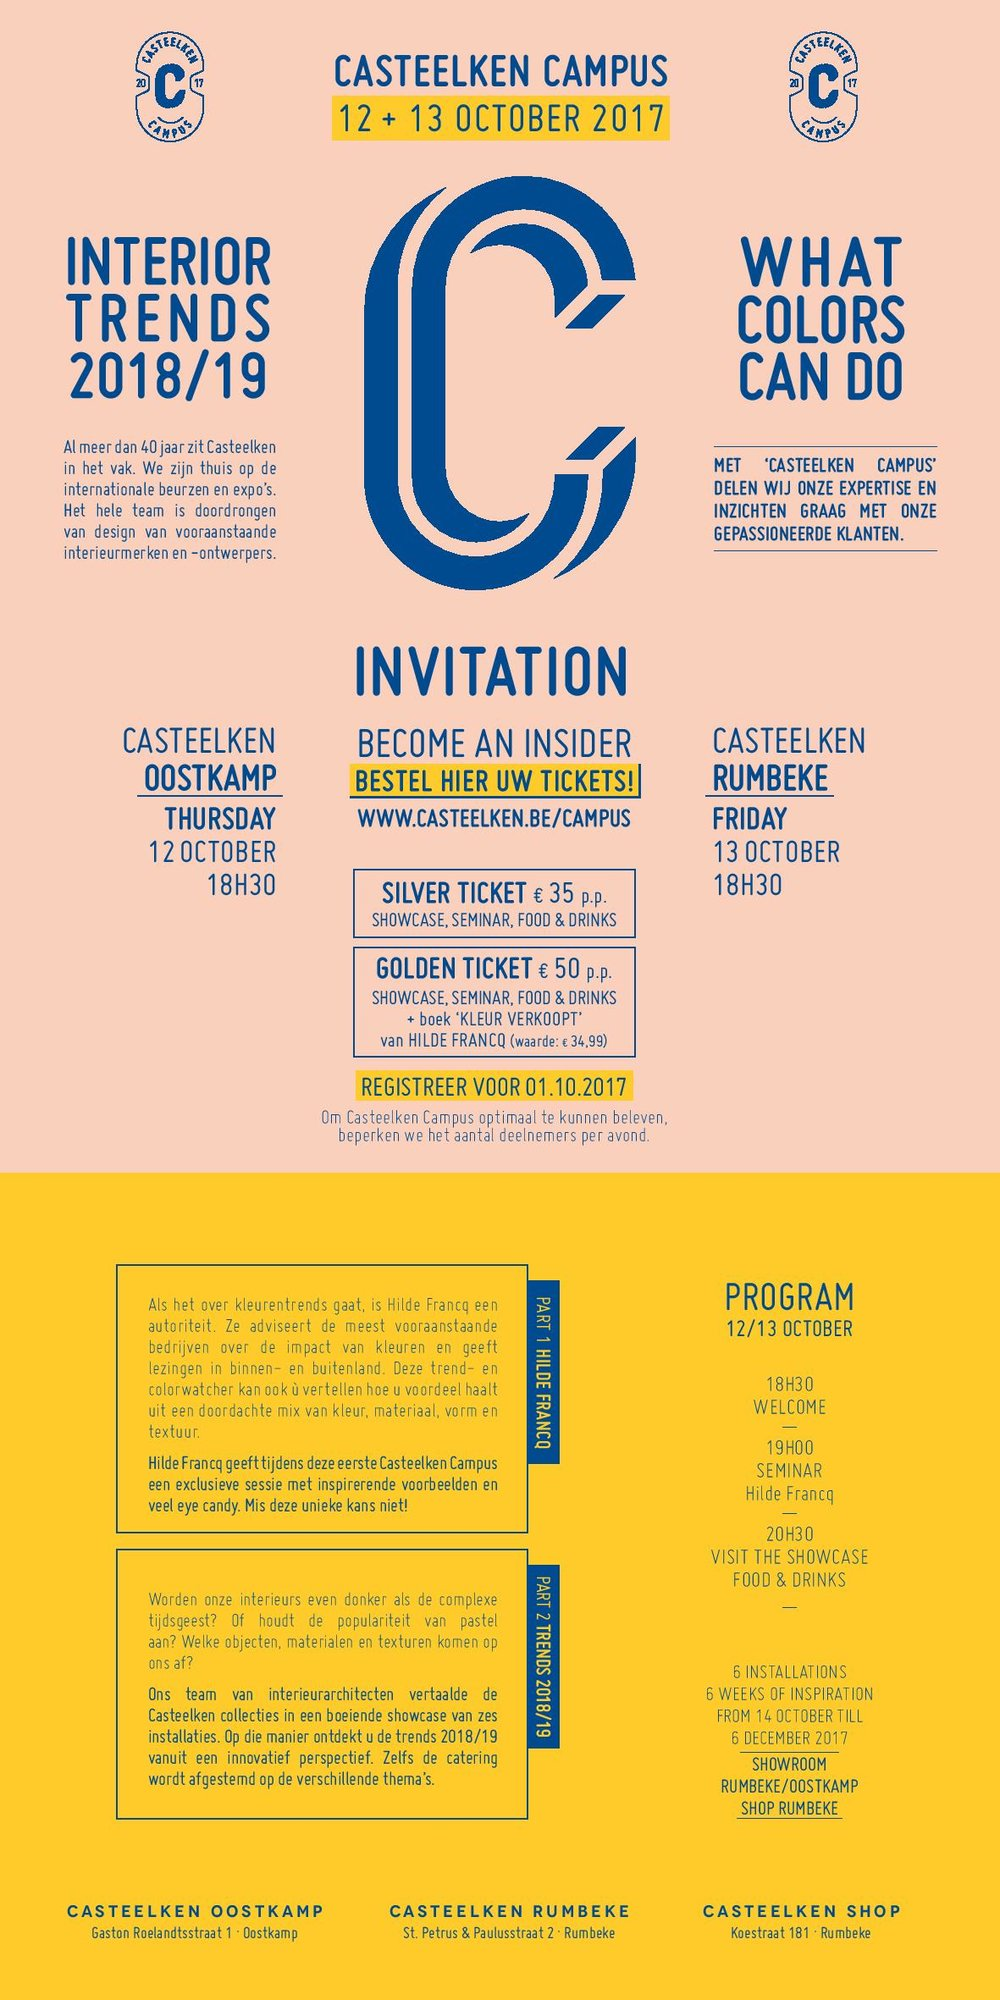 CASTEELKEN_CAMPUS_INVITATION_1-page-001.jpg